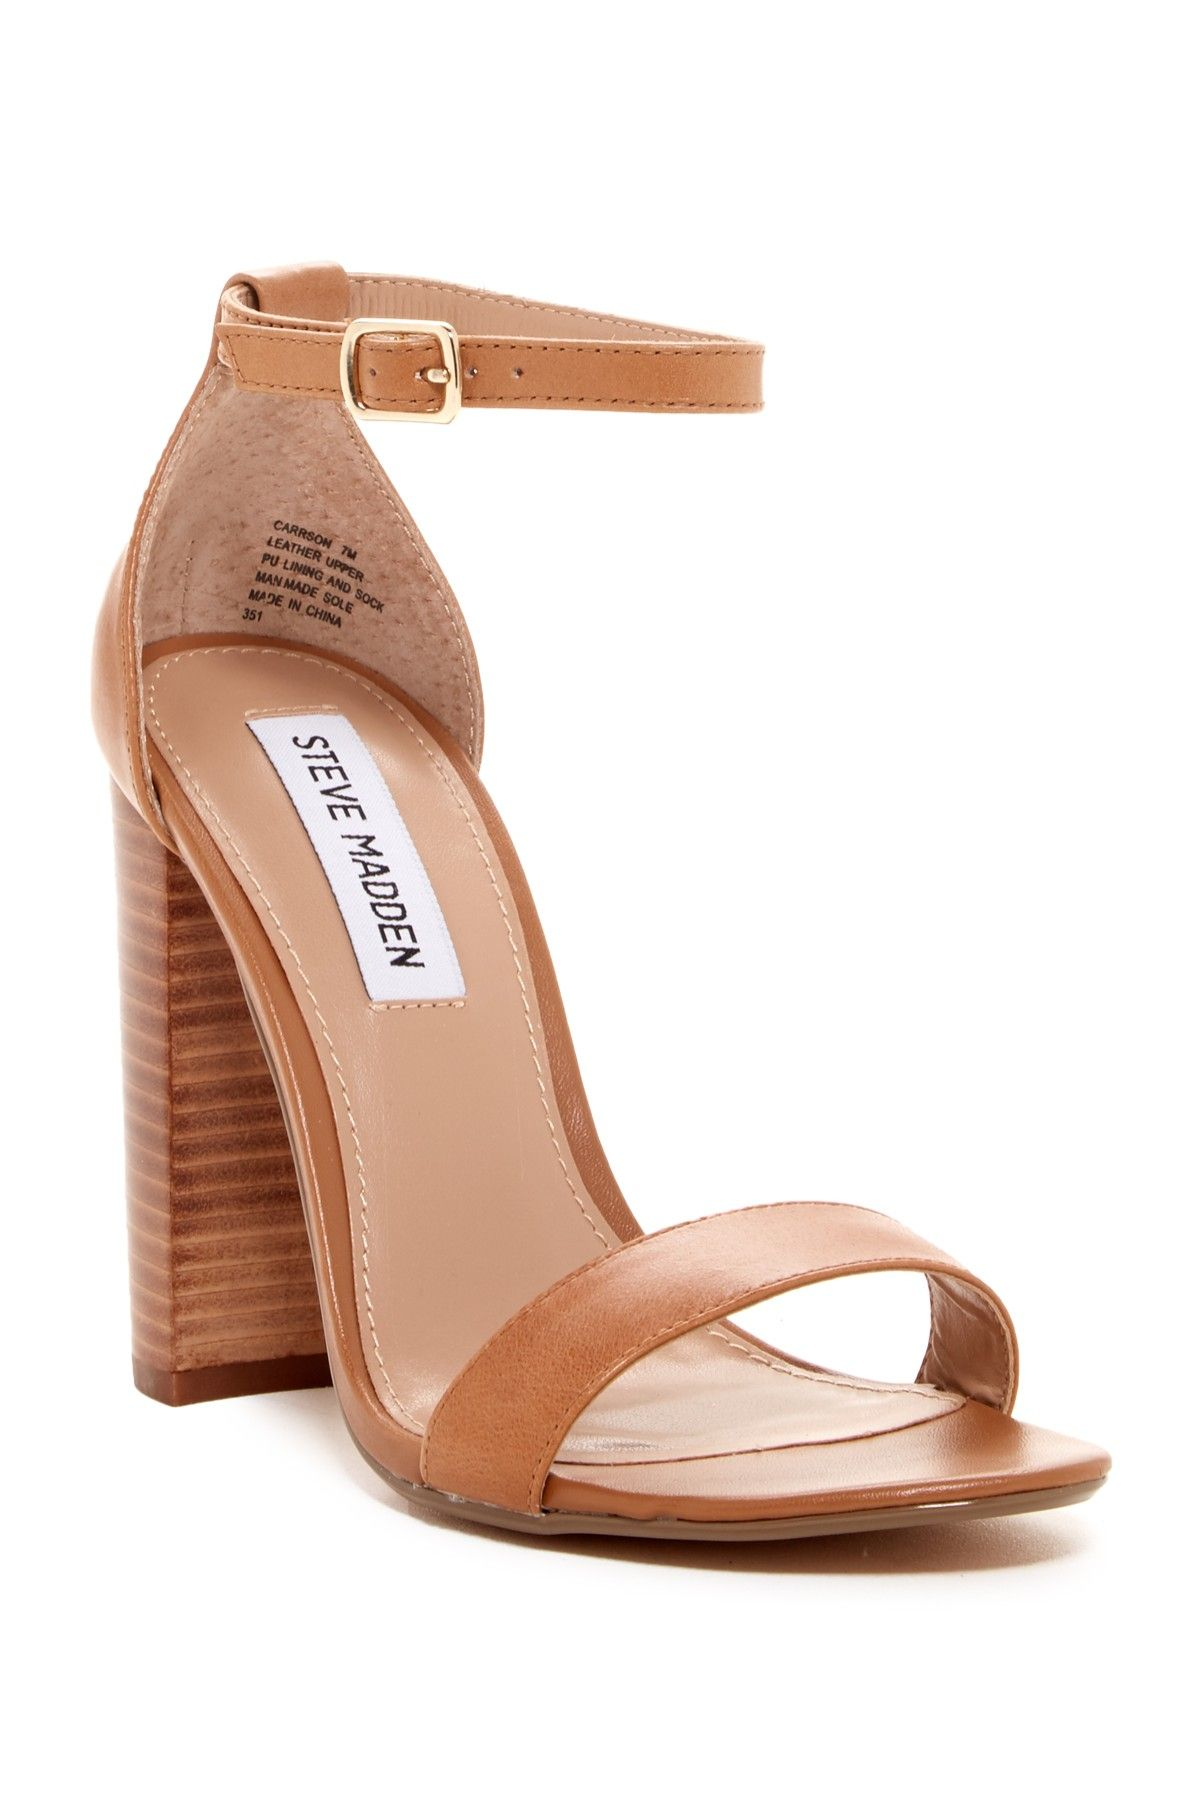 A must-have for summer! An elegant pair of Steve Madden sandals that will go with any work outfit, or date night dress.